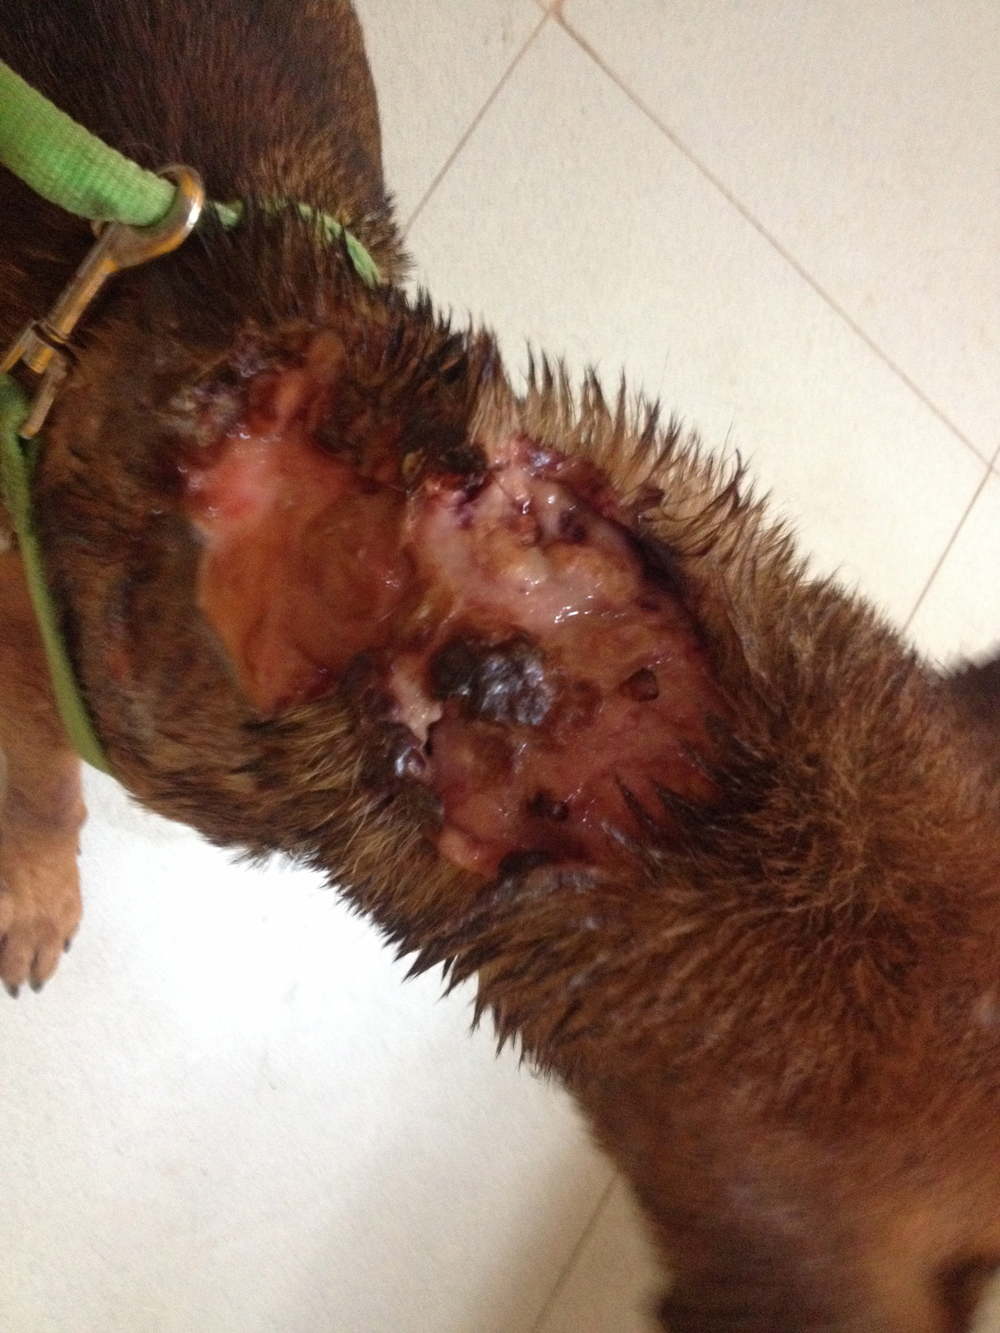 Machete wound: beneath the skin are maggots. The dog barked too much so a villager cut it with a machete.